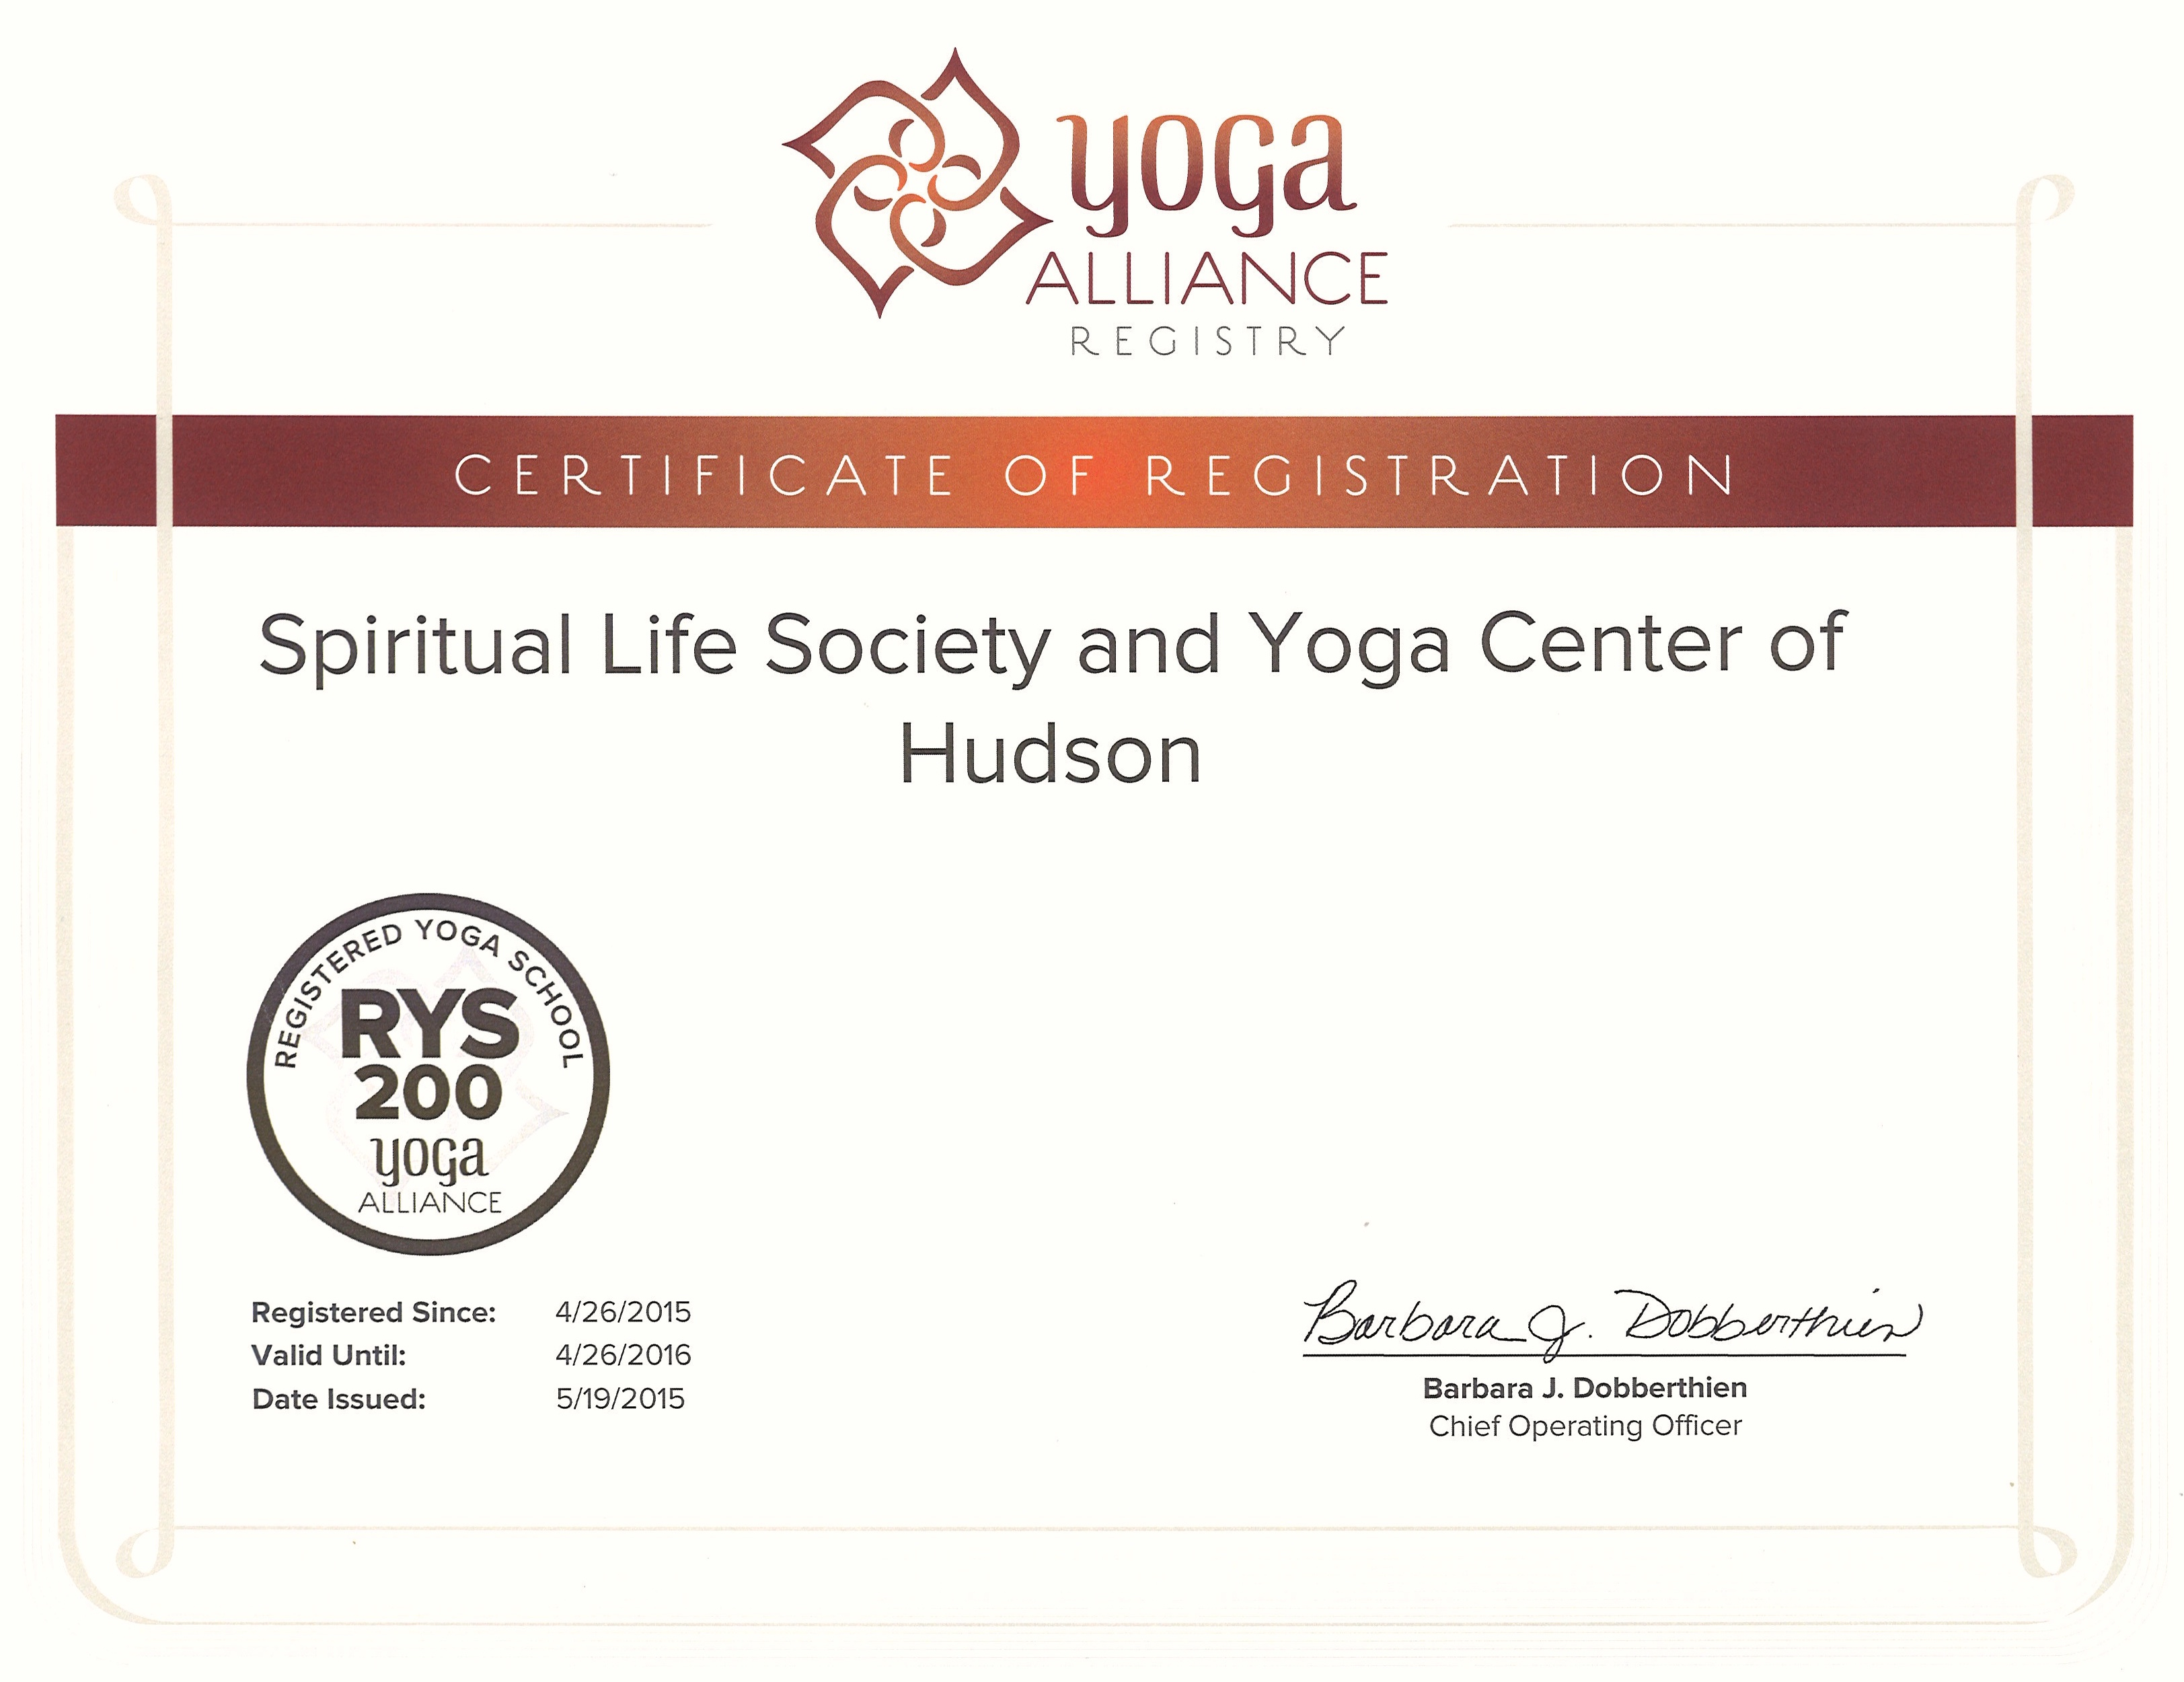 Yogateacher hbombe page we have offered yoga teacher training since 1982 and became registered with yoga alliance ya in 2005 xflitez Gallery